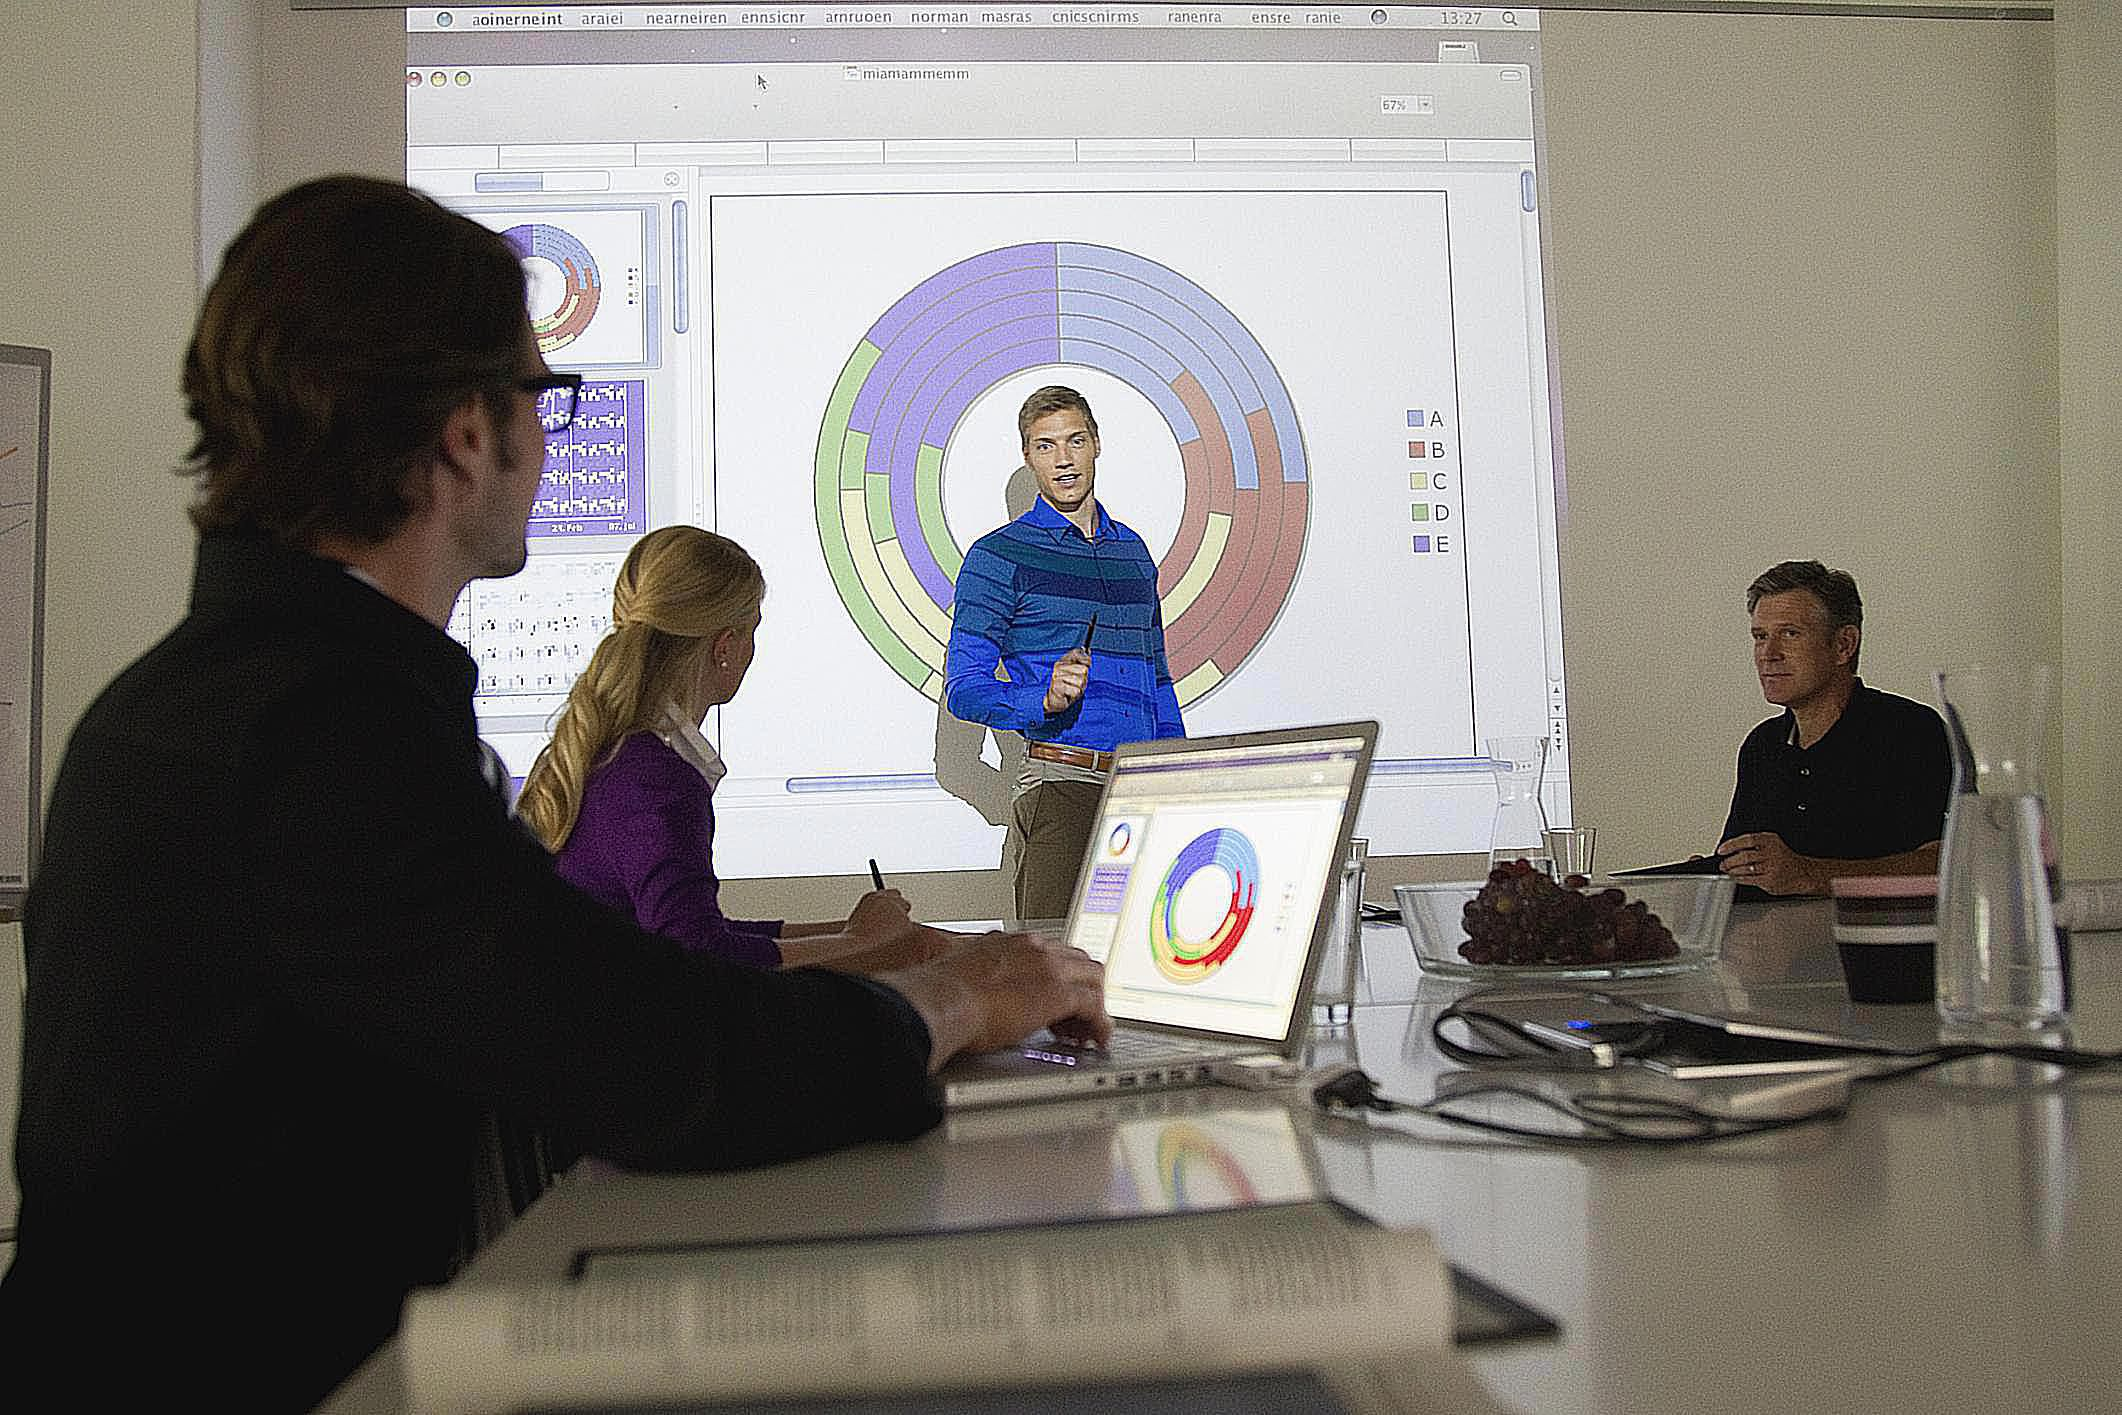 A Few Rules for Better PowerPoint Presentations